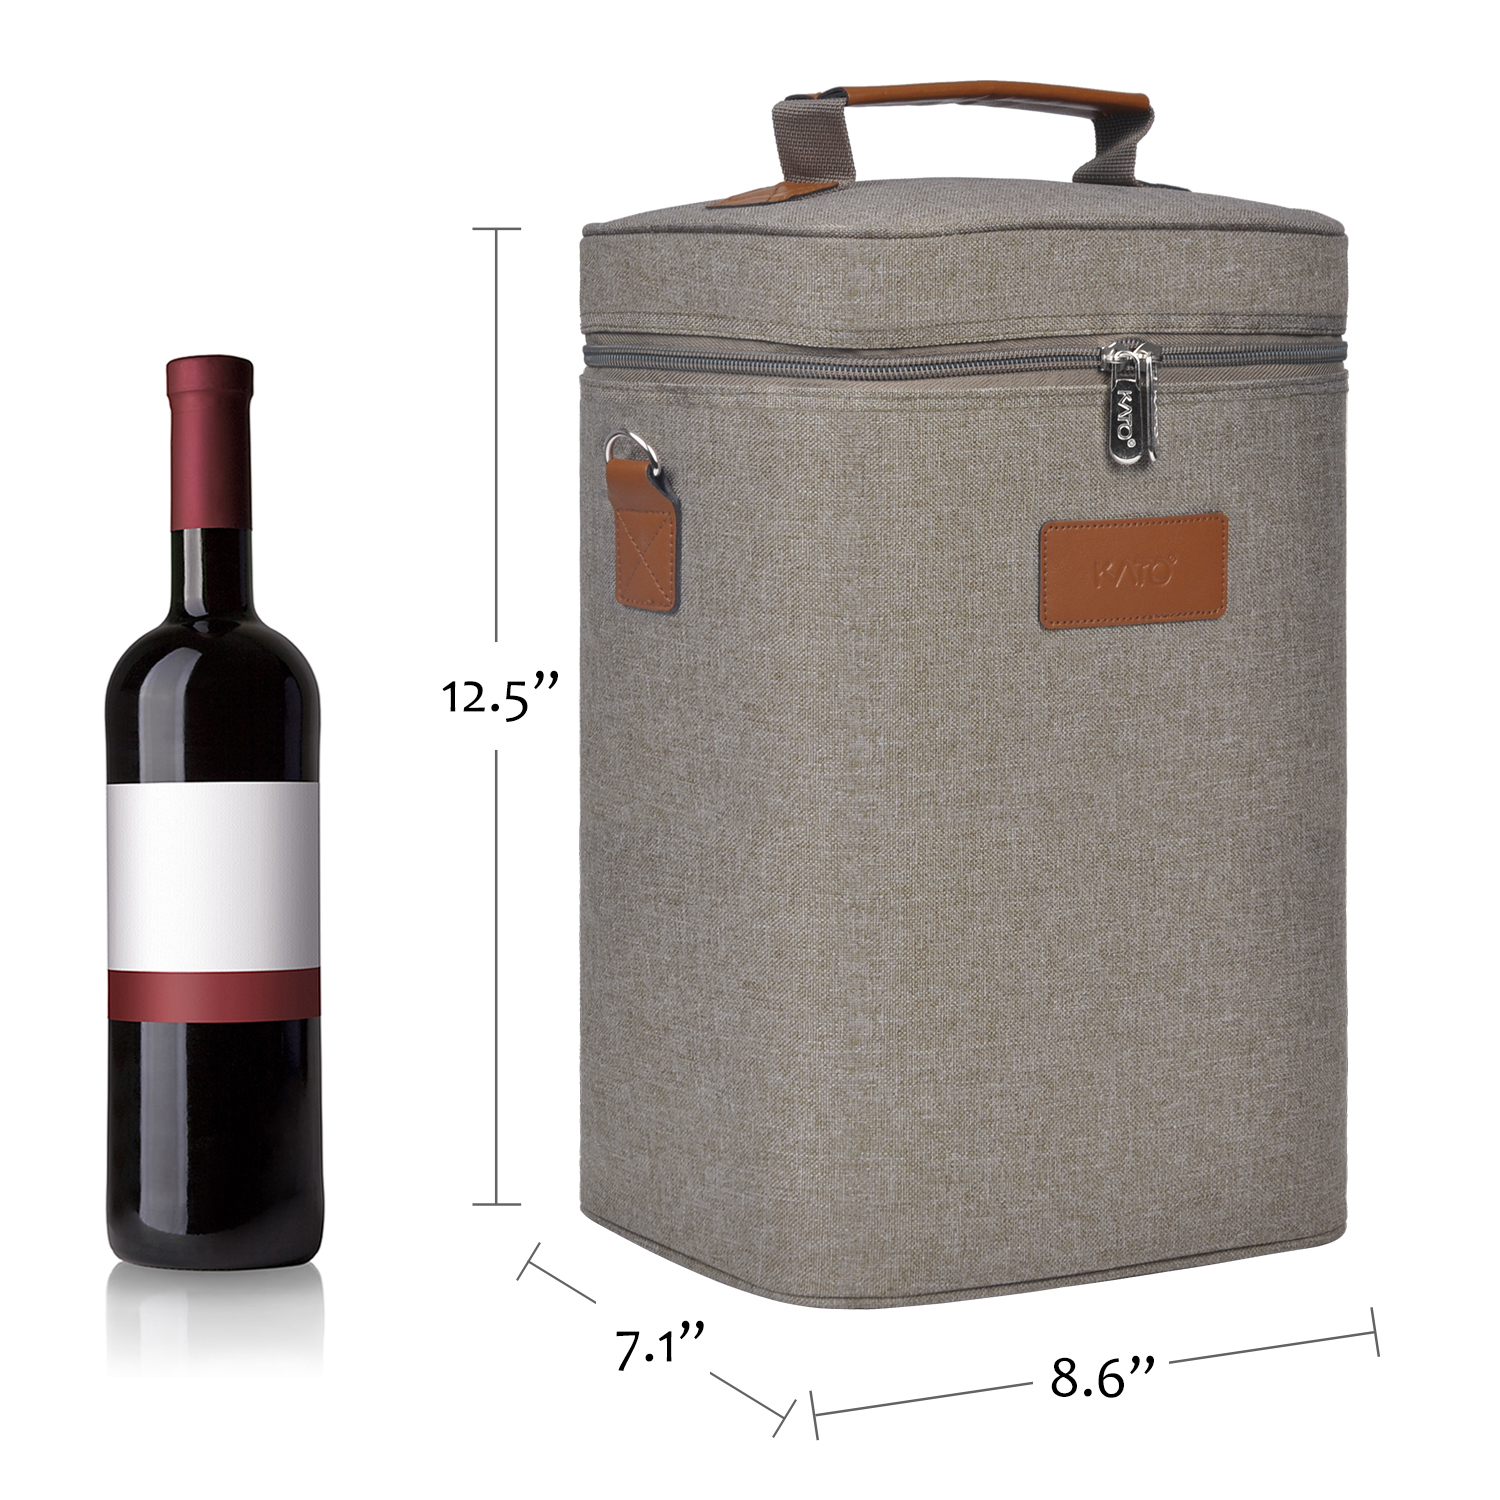 Kato Insulated Wine Tote Bag - 4 Bottle Travel Padded Wine/ Champagne Cooler Carrier with Handle and Shoulder Strap, Great Wine Lover Gift